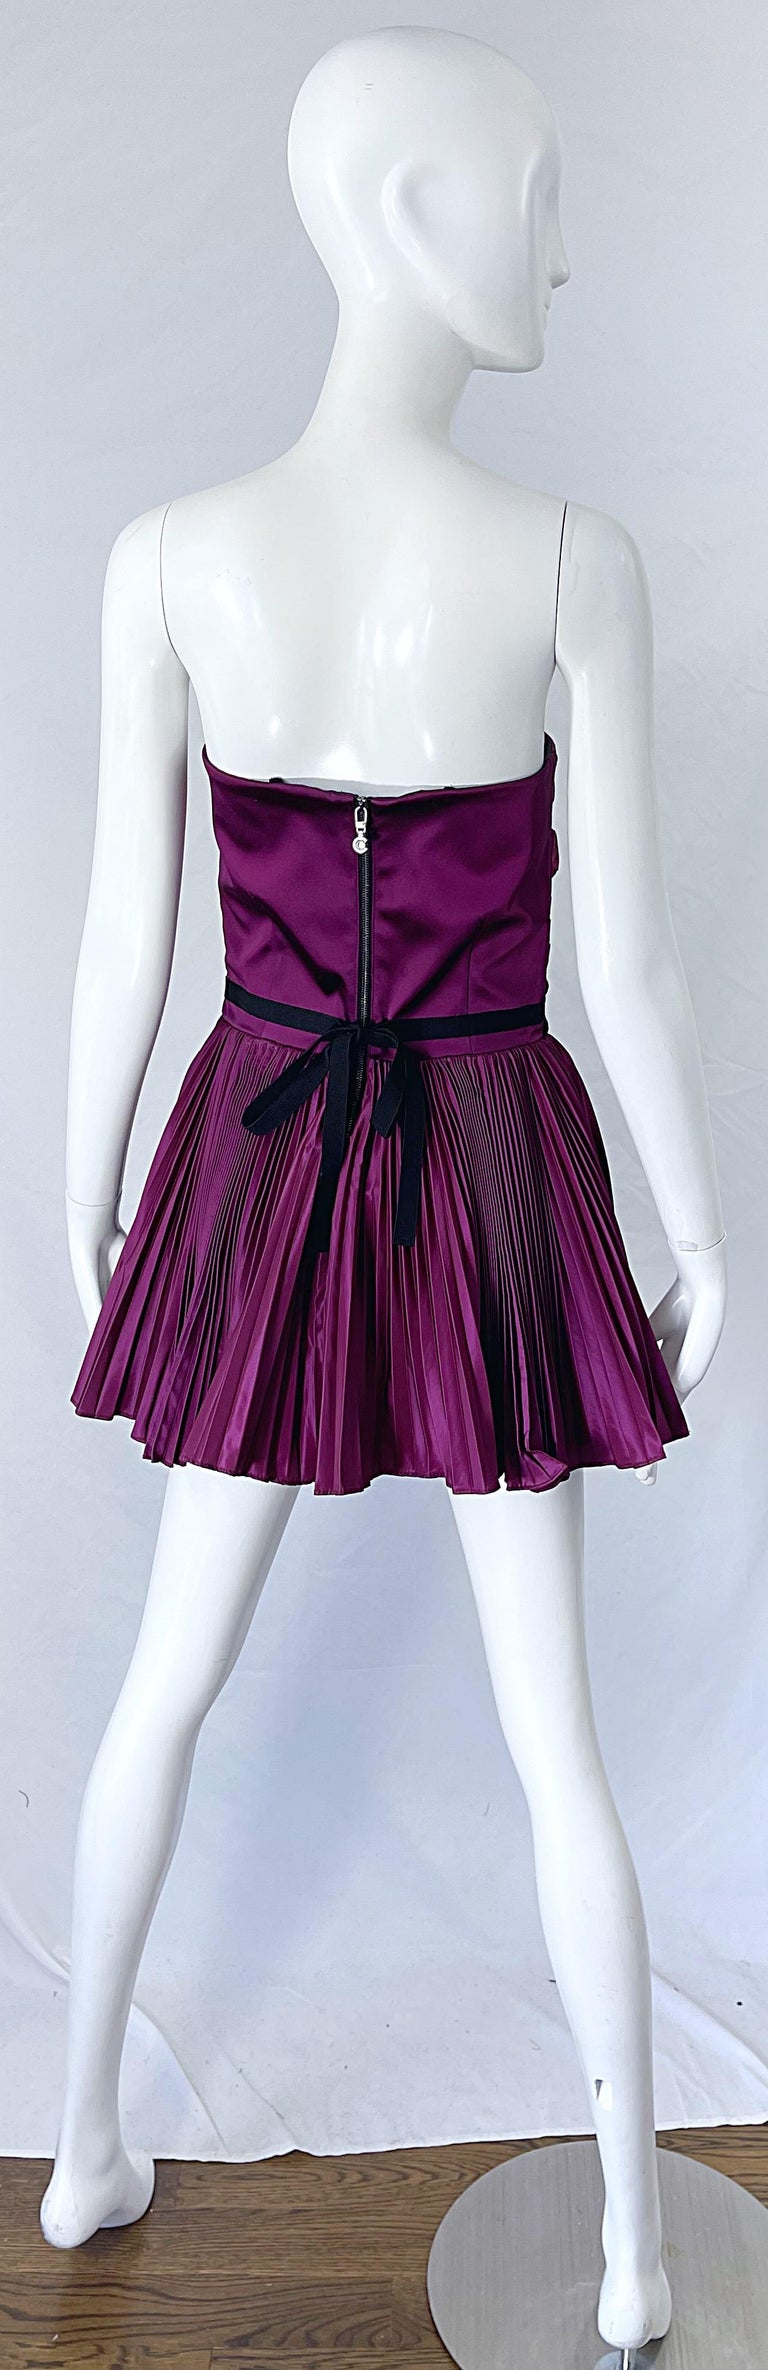 Yves Saint Laurent S/S 2012 Stefano Pilati Purple Silk Taffeta Mini Dress or Top For Sale 1